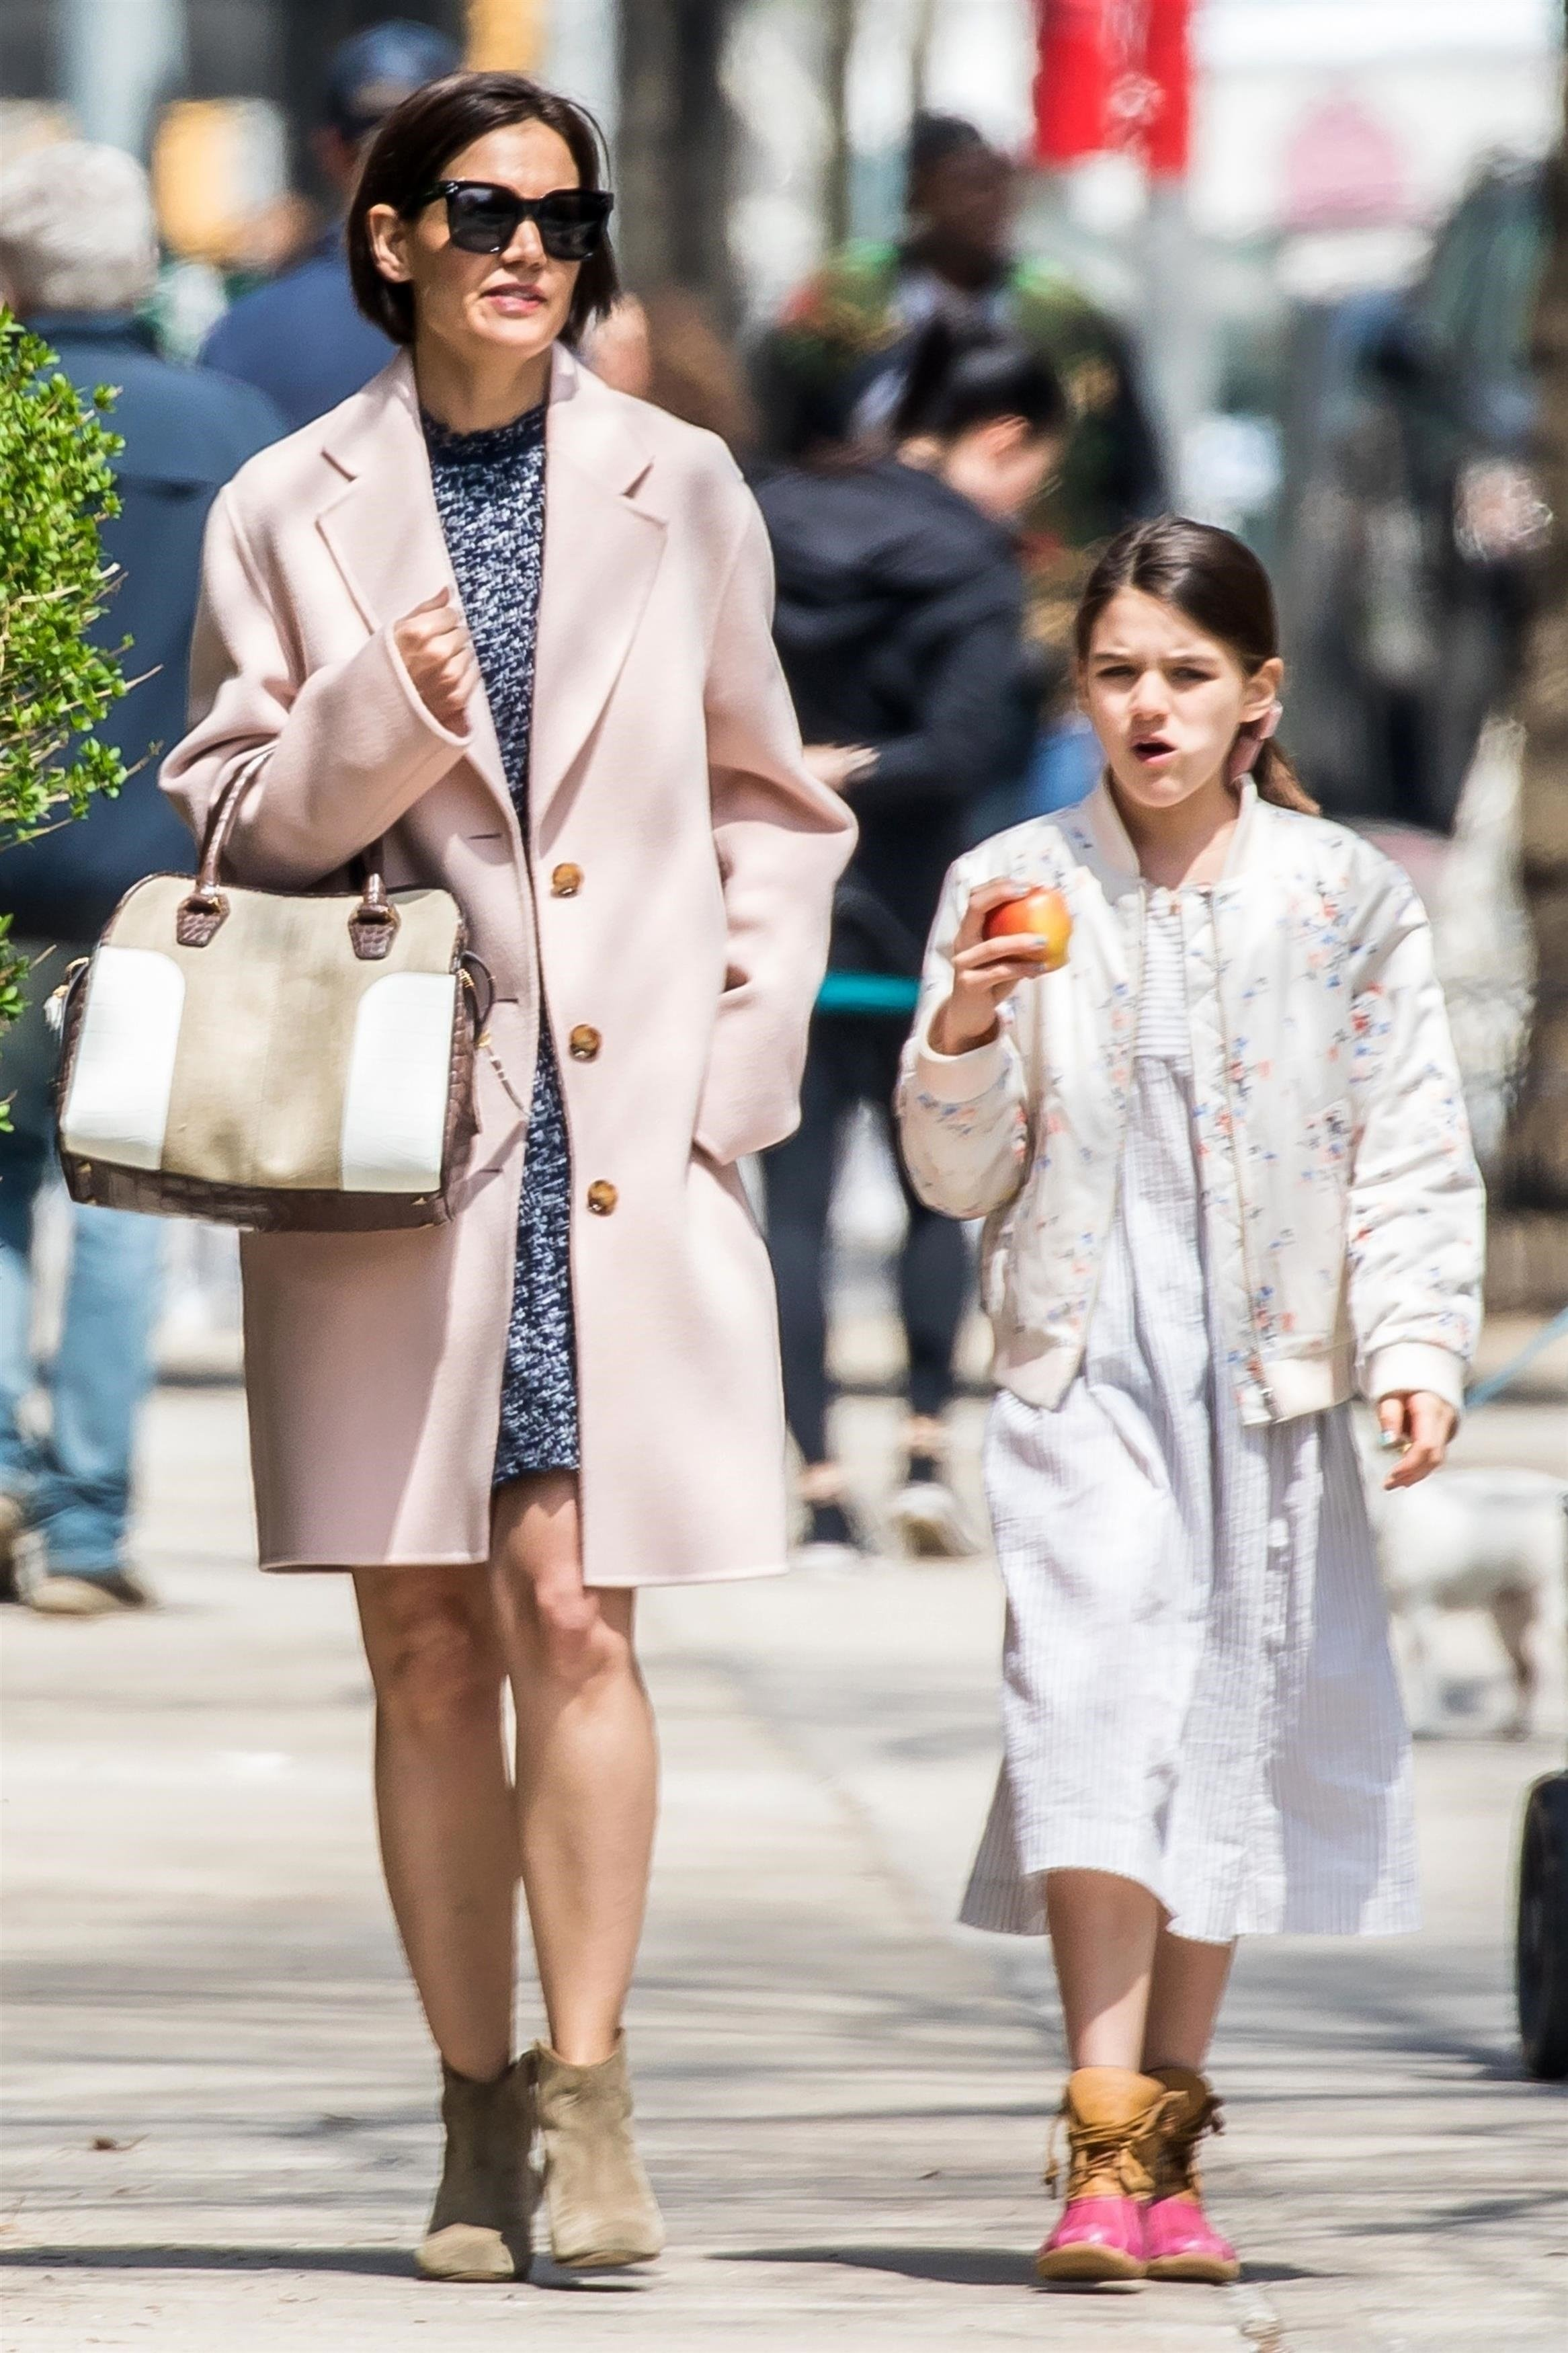 New York City, NY  - Actress Katie Holmes and her daughter Suri Cruise were seen sporting light spring colors while strolling through Manhattan on Saturday afternoon.  Pictured: Katie Holmes, Suri Cruise  BACKGRID USA 28 APRIL 2018, Image: 370031493, License: Rights-managed, Restrictions: , Model Release: no, Credit line: Profimedia, AKM-GSI